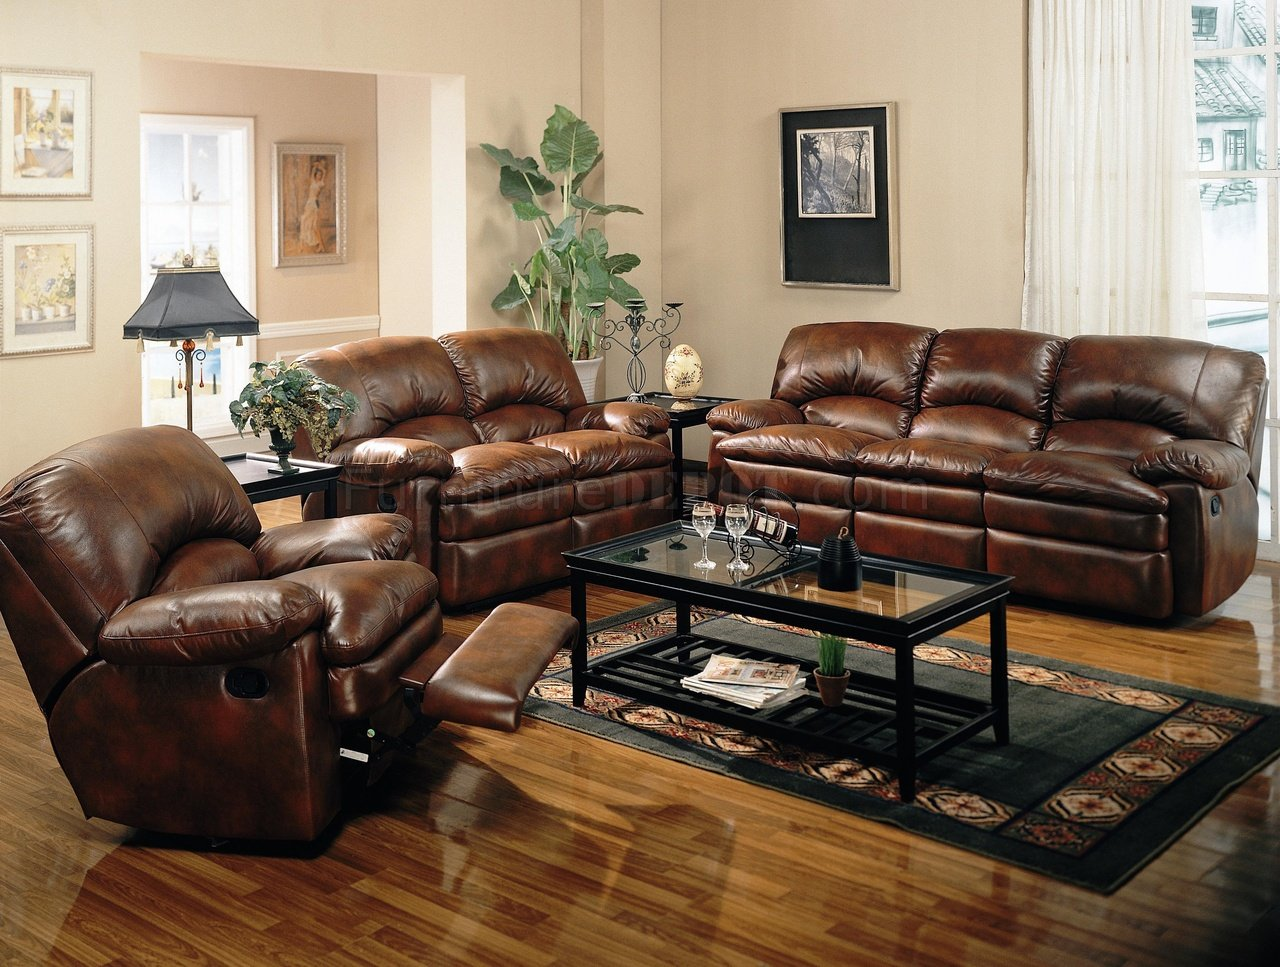 Dinette Set Rich Brown Bonded Leather Modern Reclining Sofa W/options